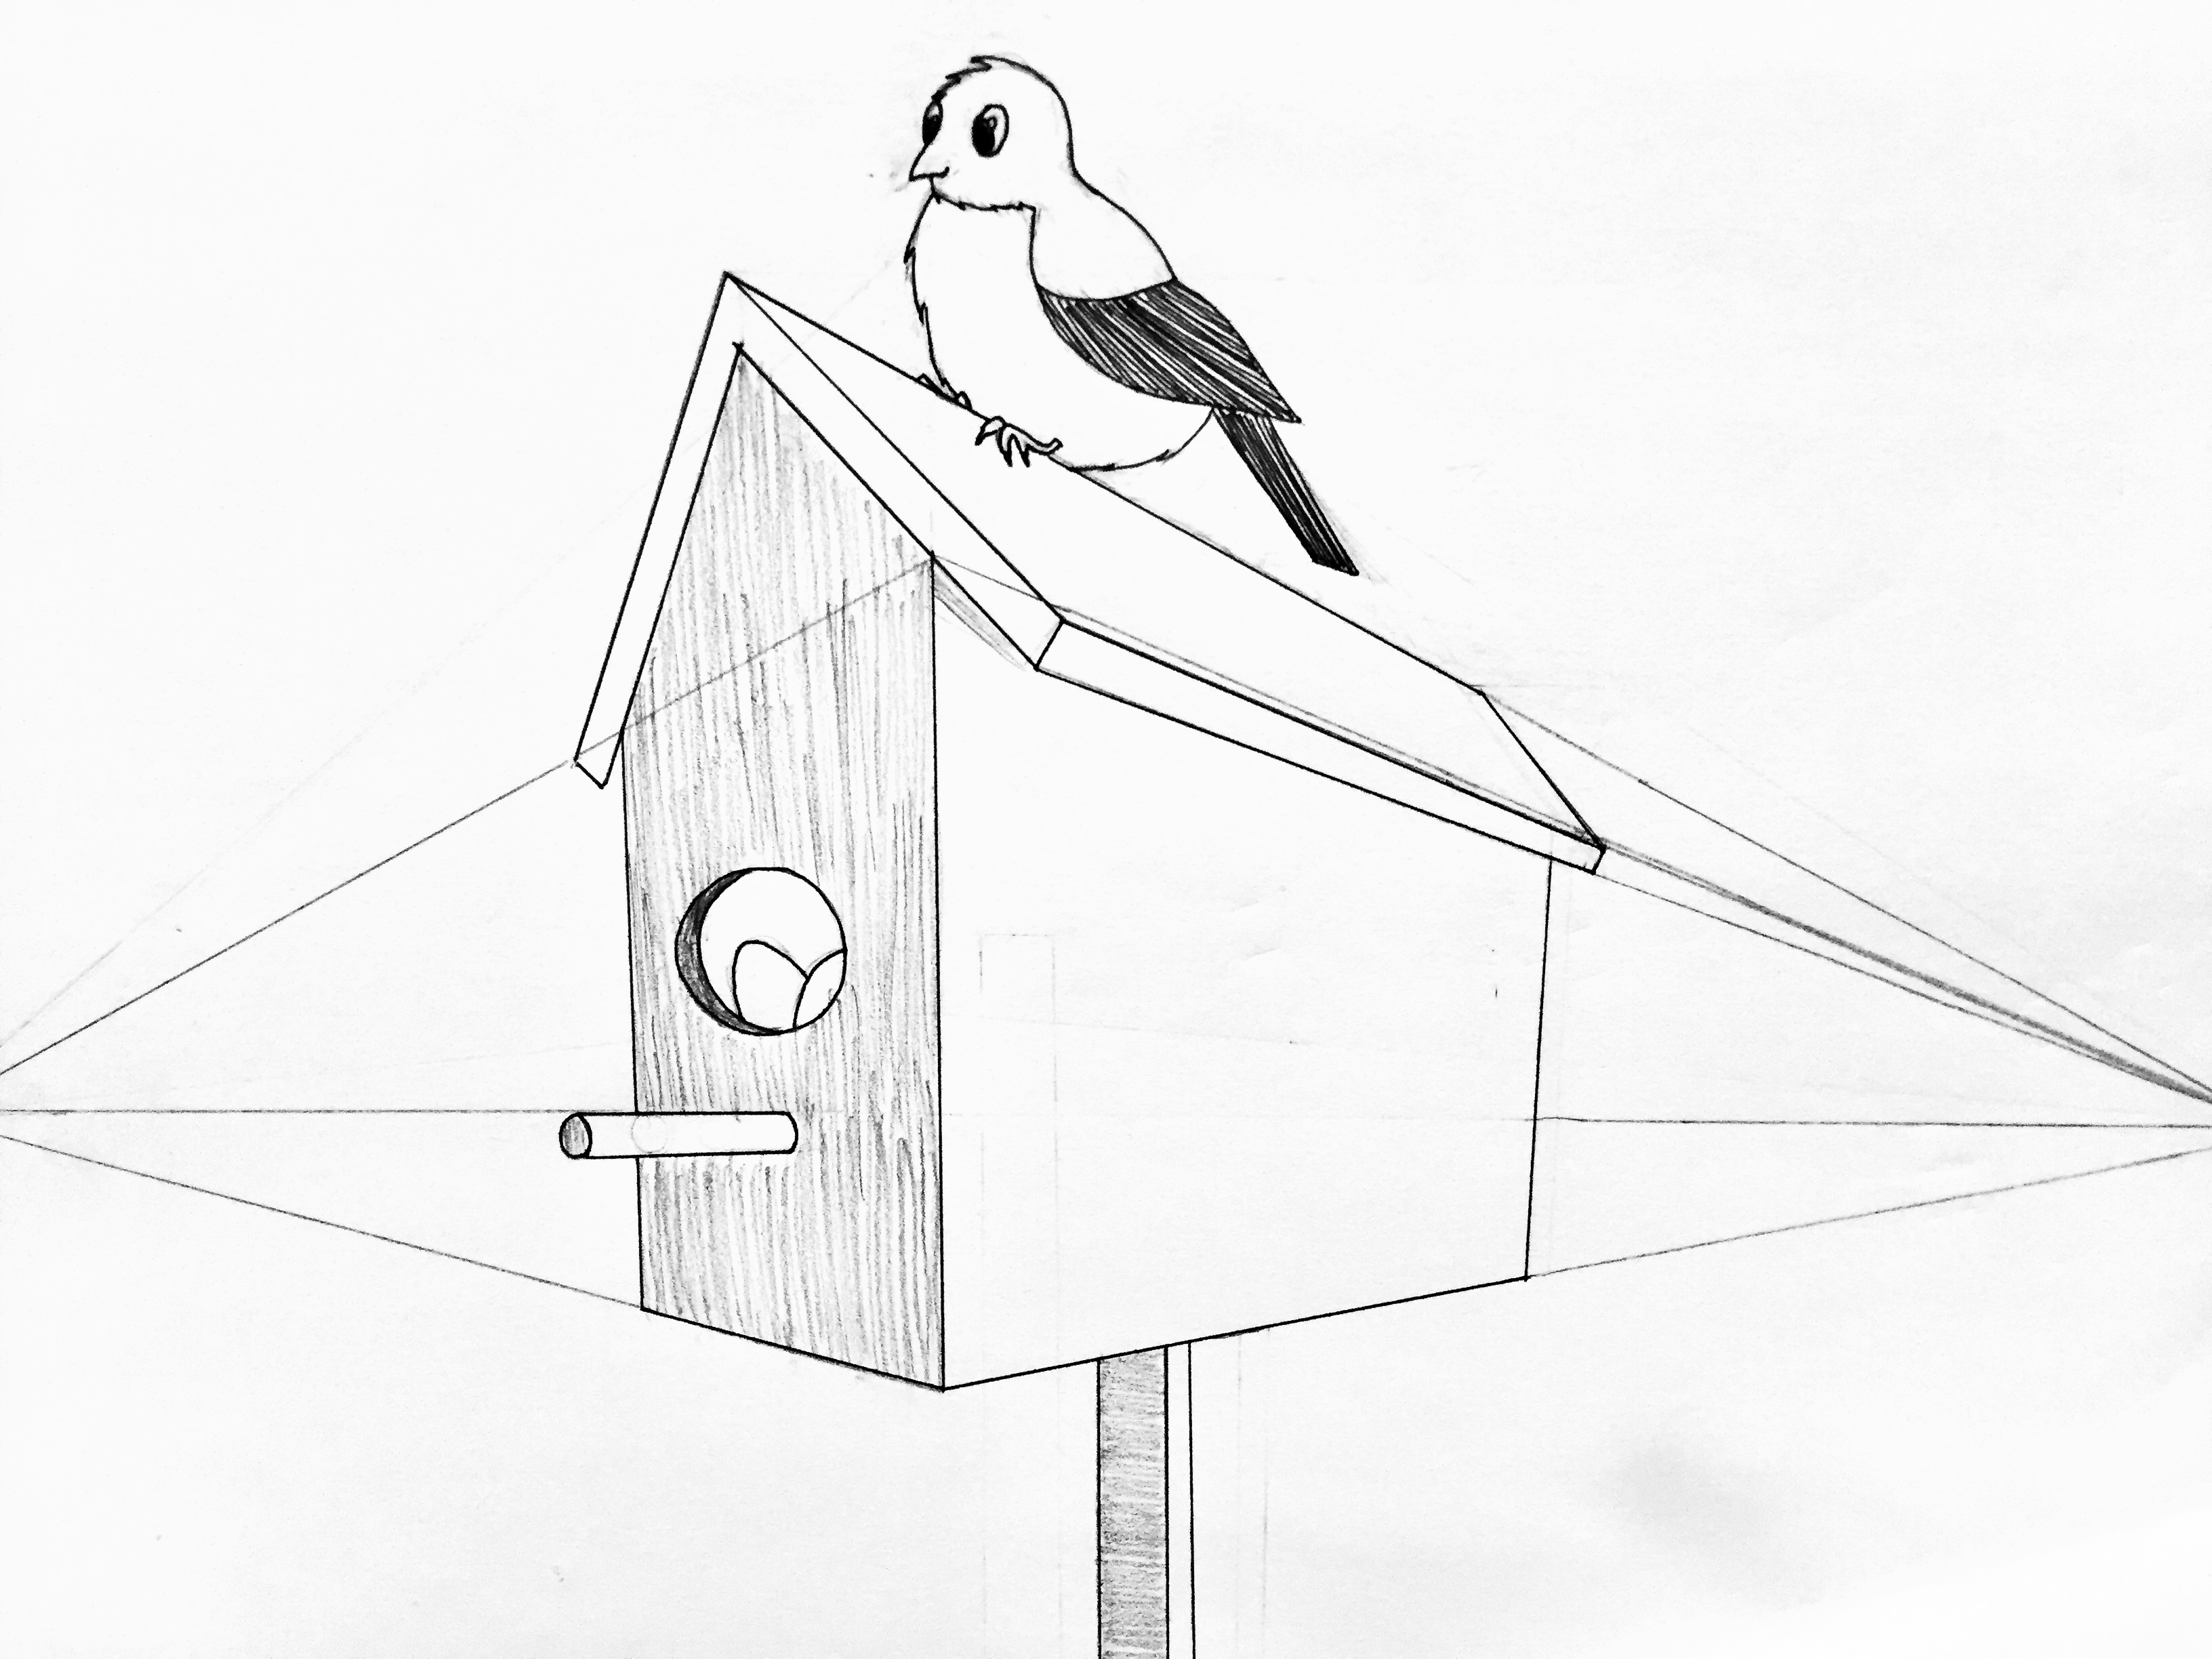 A 2-point perspective drawing of a birdhouse with a bird sitting on top.